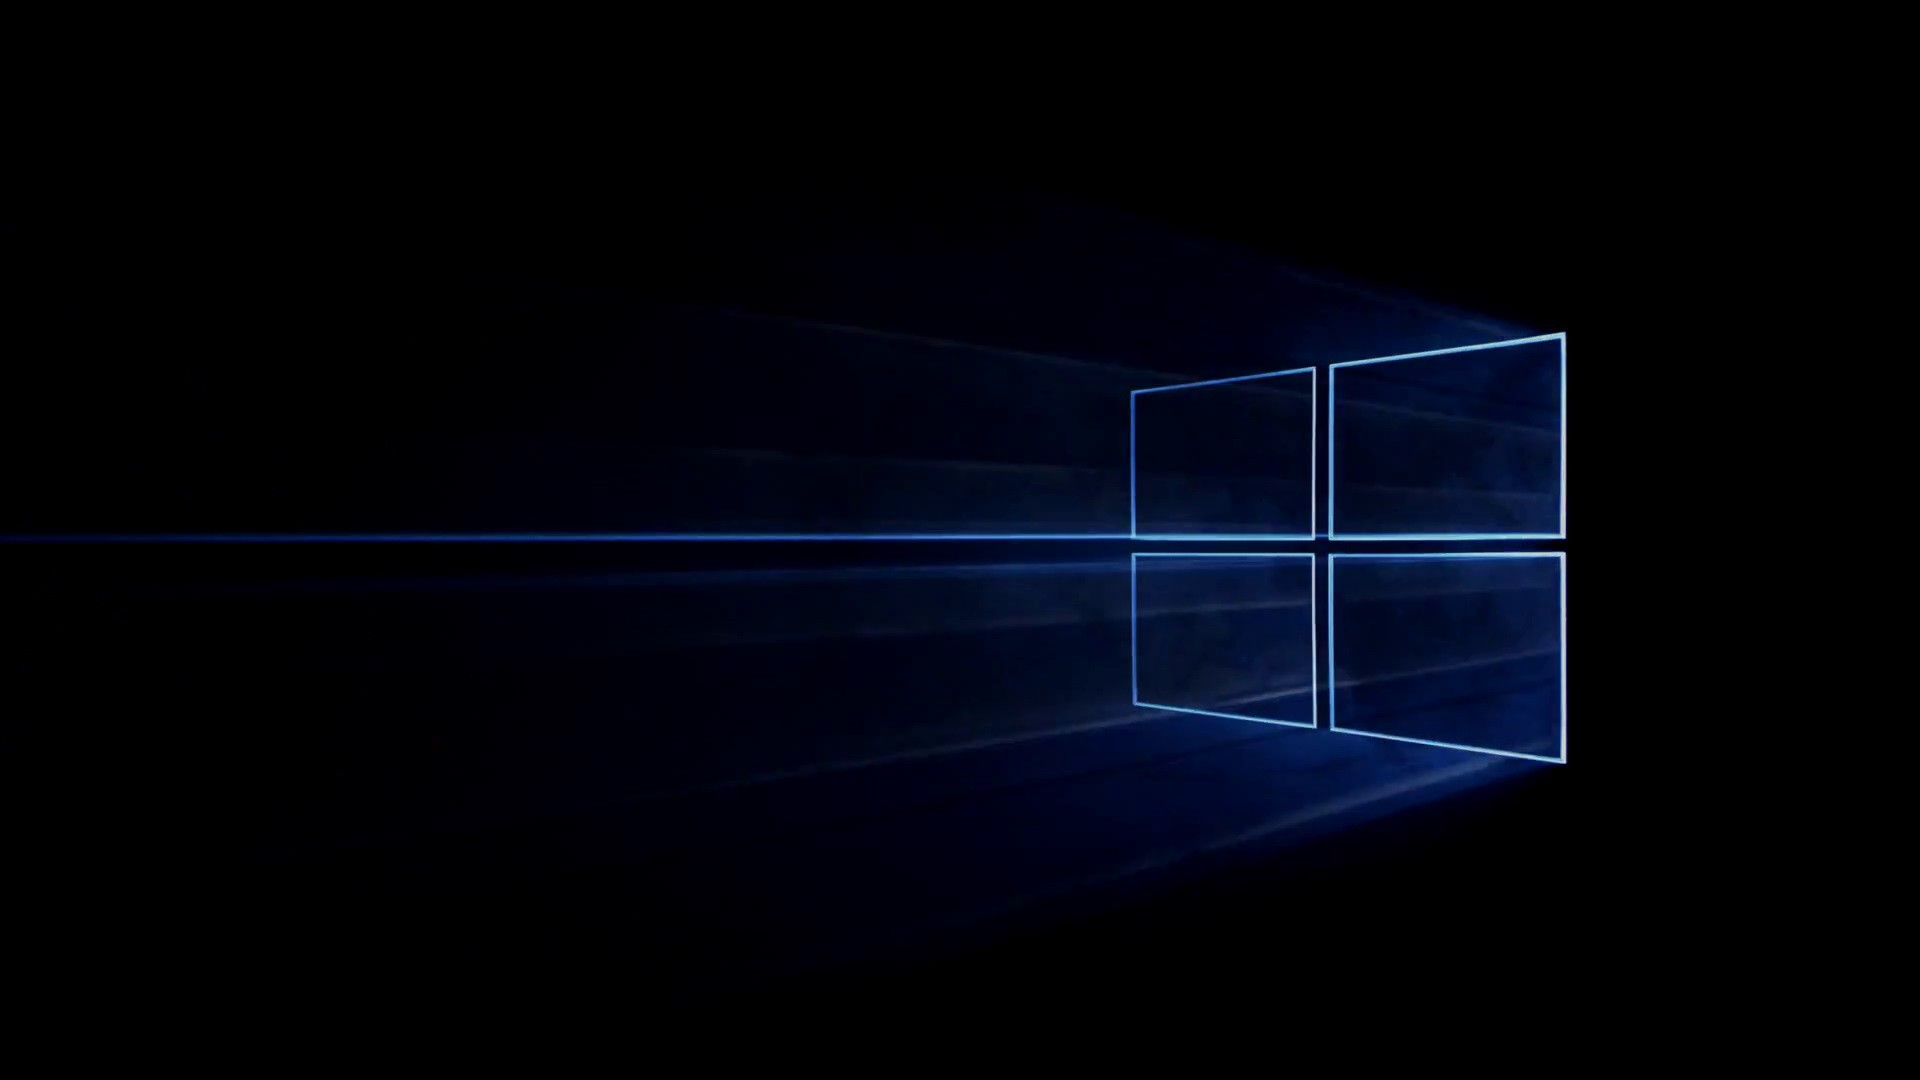 windows 10 hd wallpaper 1920x1080 wallpapersafari